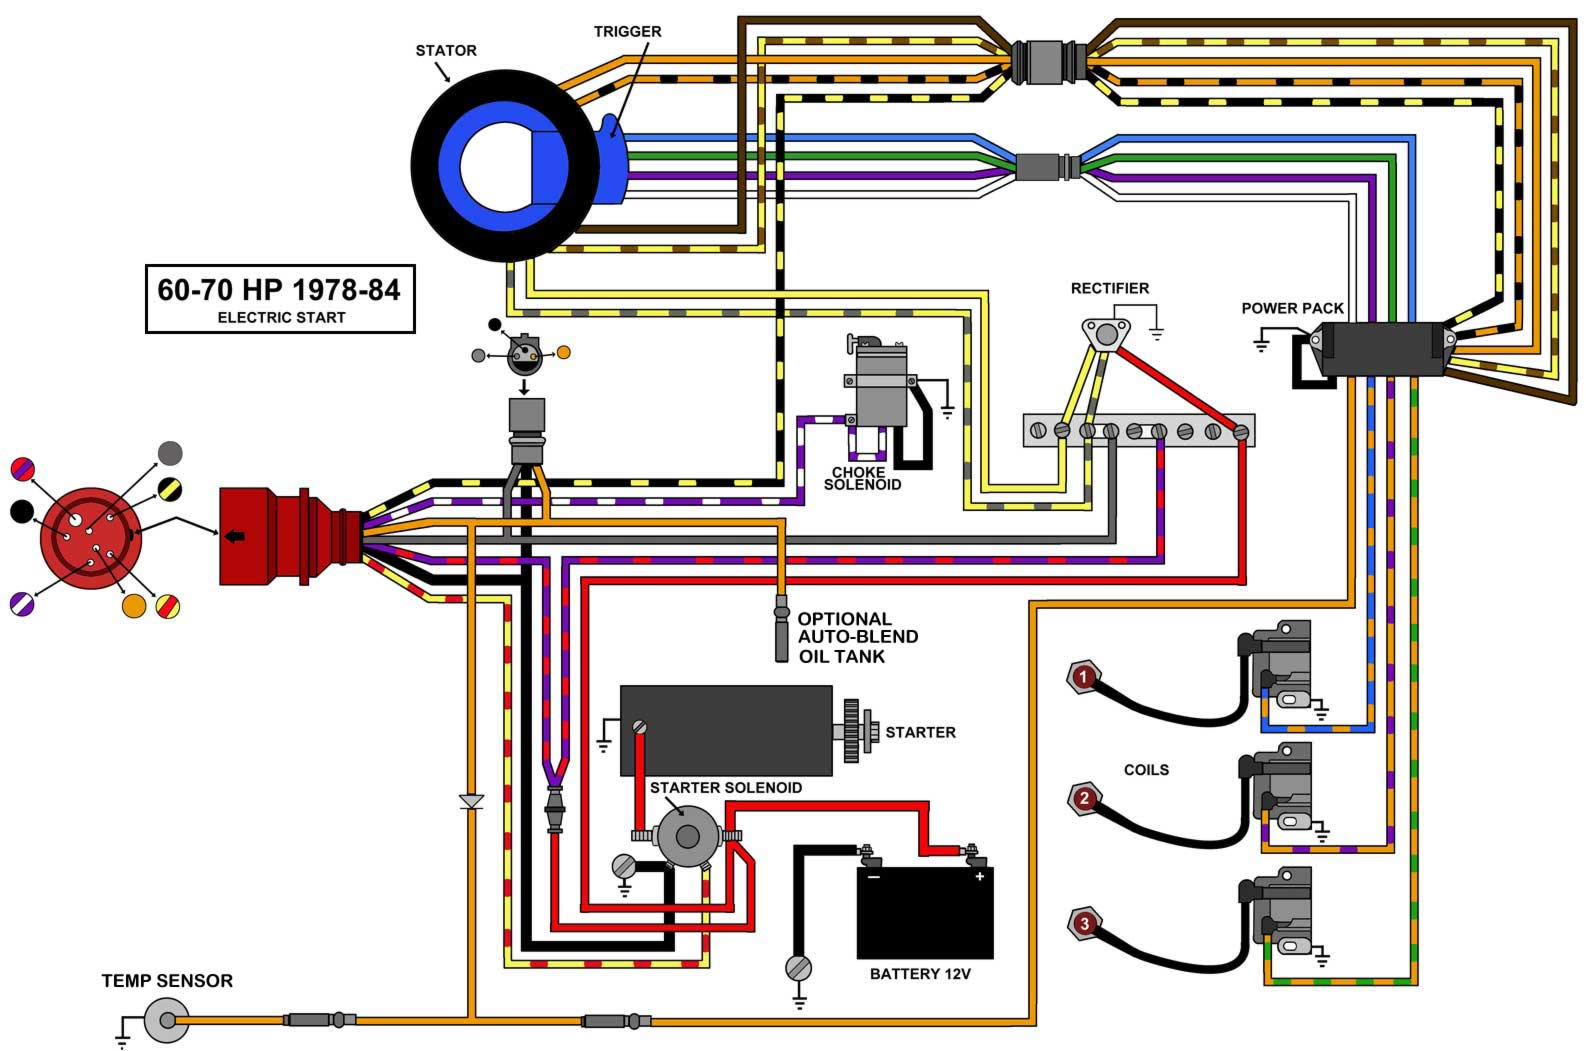 78 84_3 CYL_EL wiring tach from johnson controls page 1 iboats boating forums mariner 115 outboard wiring diagram at alyssarenee.co